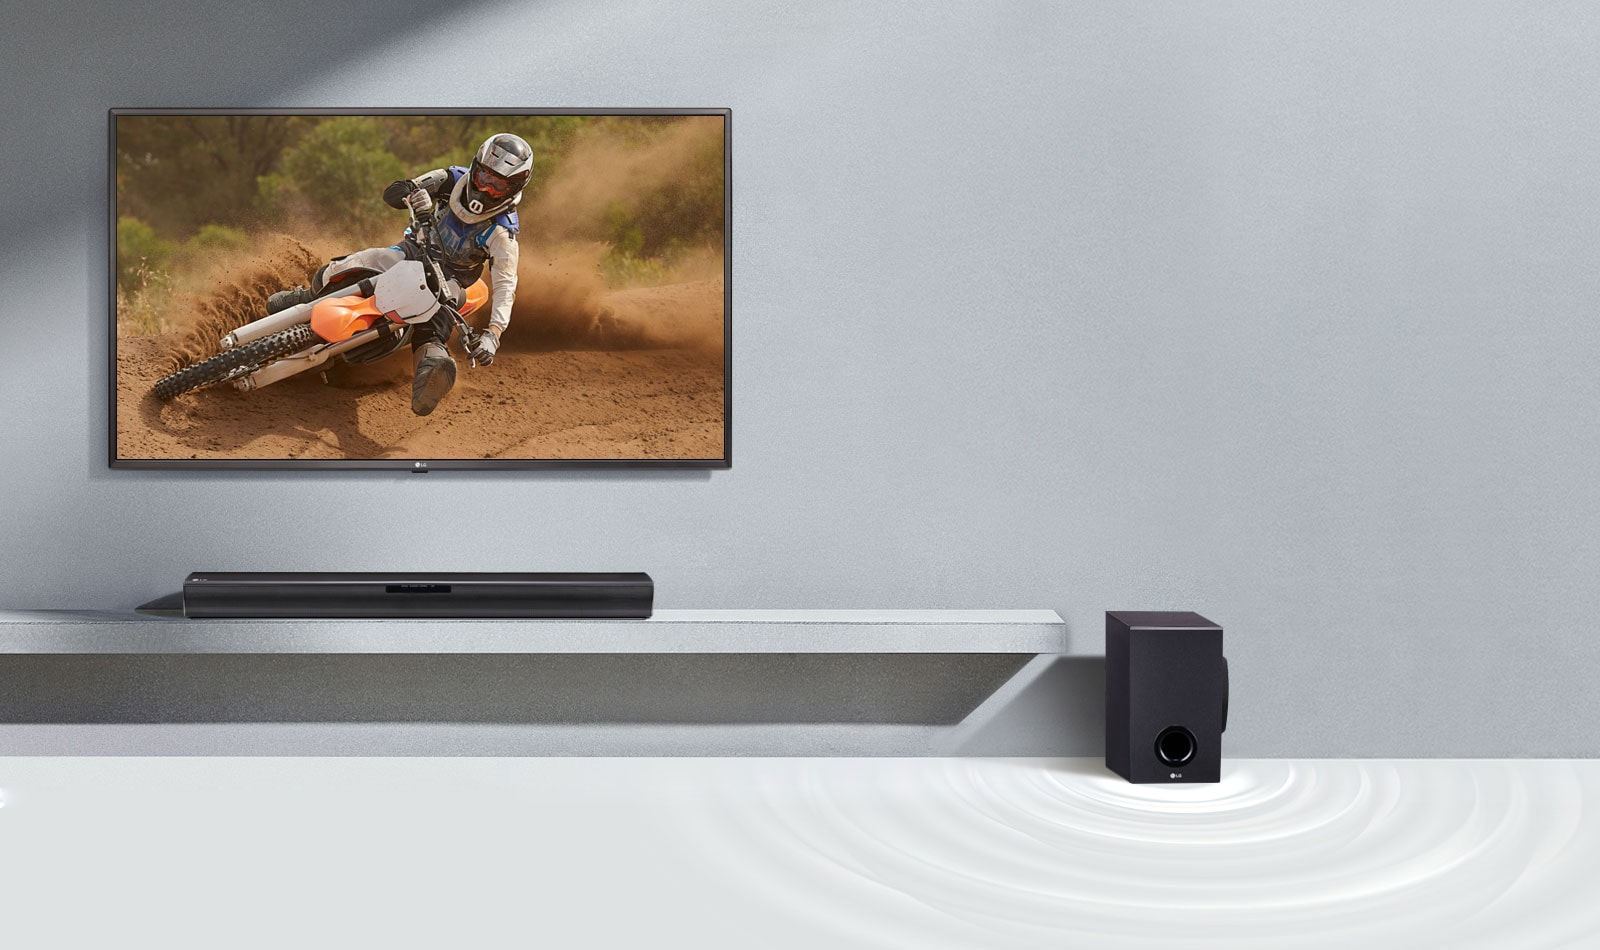 Wireless Subwoofer, superb bass without wires